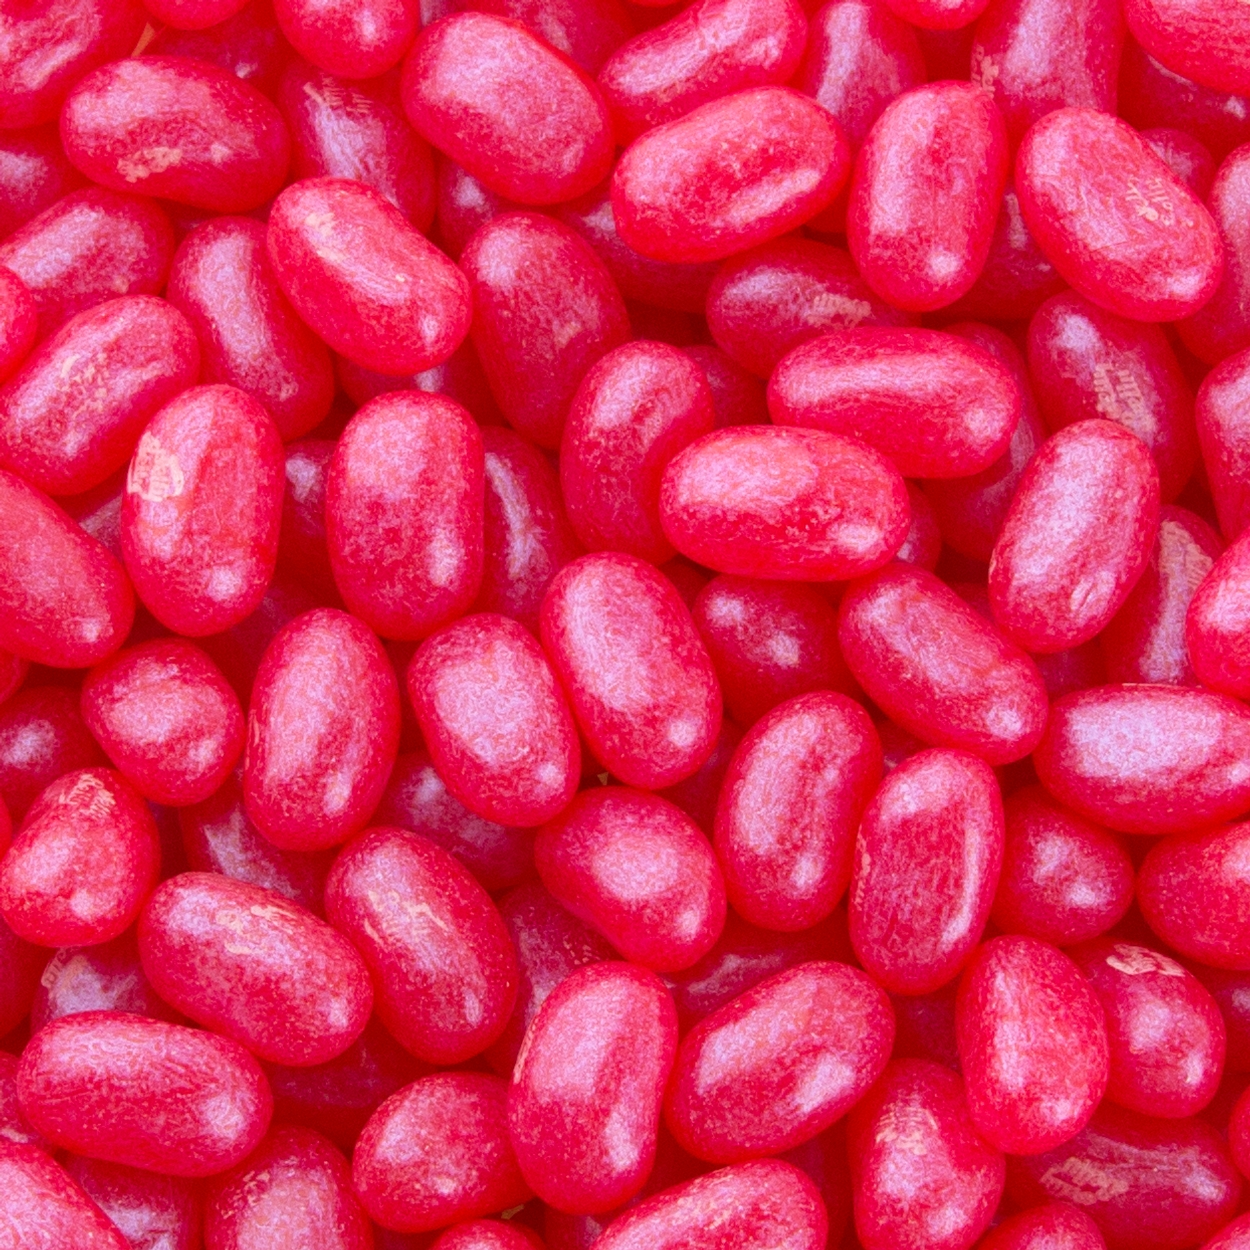 Jelly Belly Jewel Red Jelly Beans - Very Cherry • Jelly Beans Candy ...